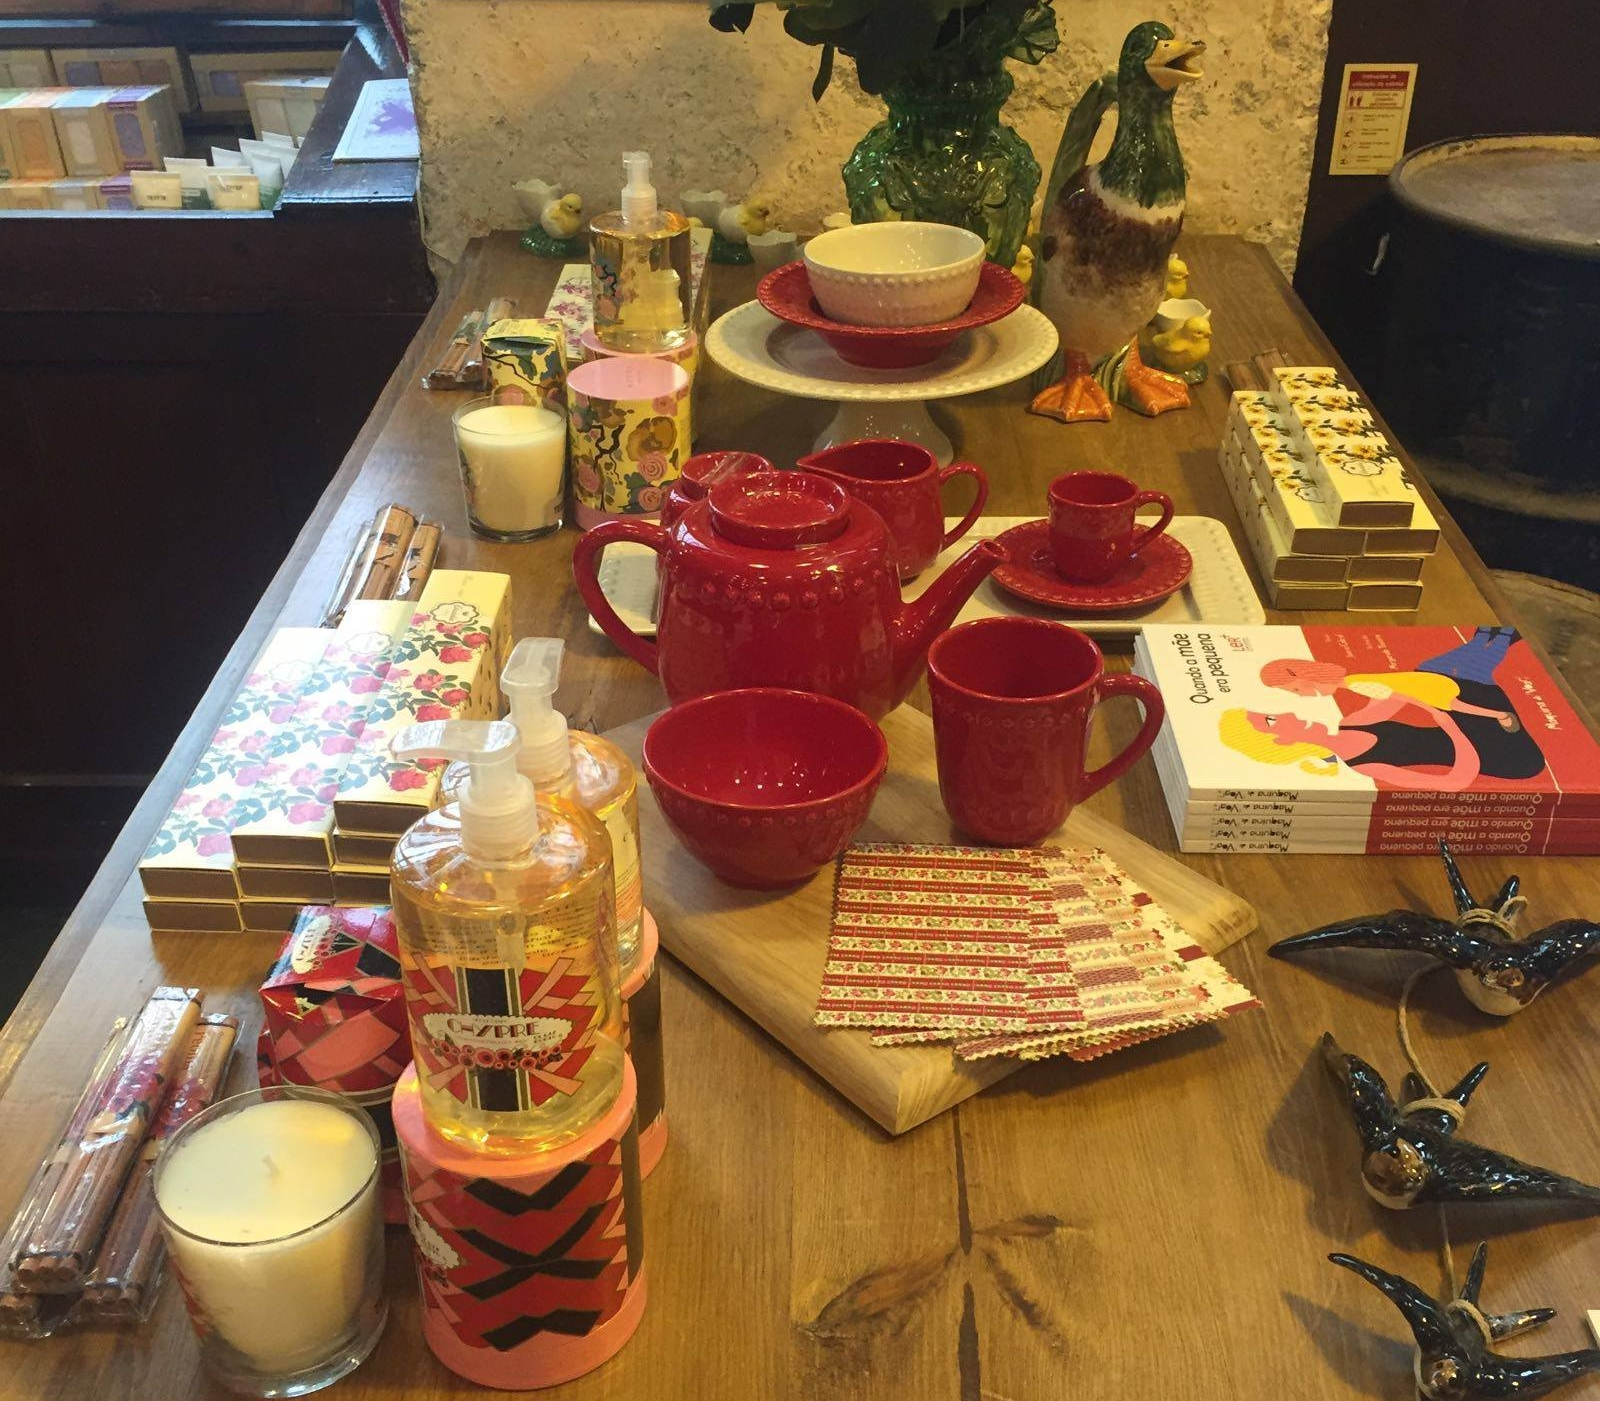 A VIDA PORTUGUESA  - PORTO  In this space, you'll find exclusive products of Portuguese origin, such as: soaps from Ach. Brito and Confiança, small swallows from Bordalo Pinheiro, pencils from Viarco or notebooks from Emílio Braga and Serrote.